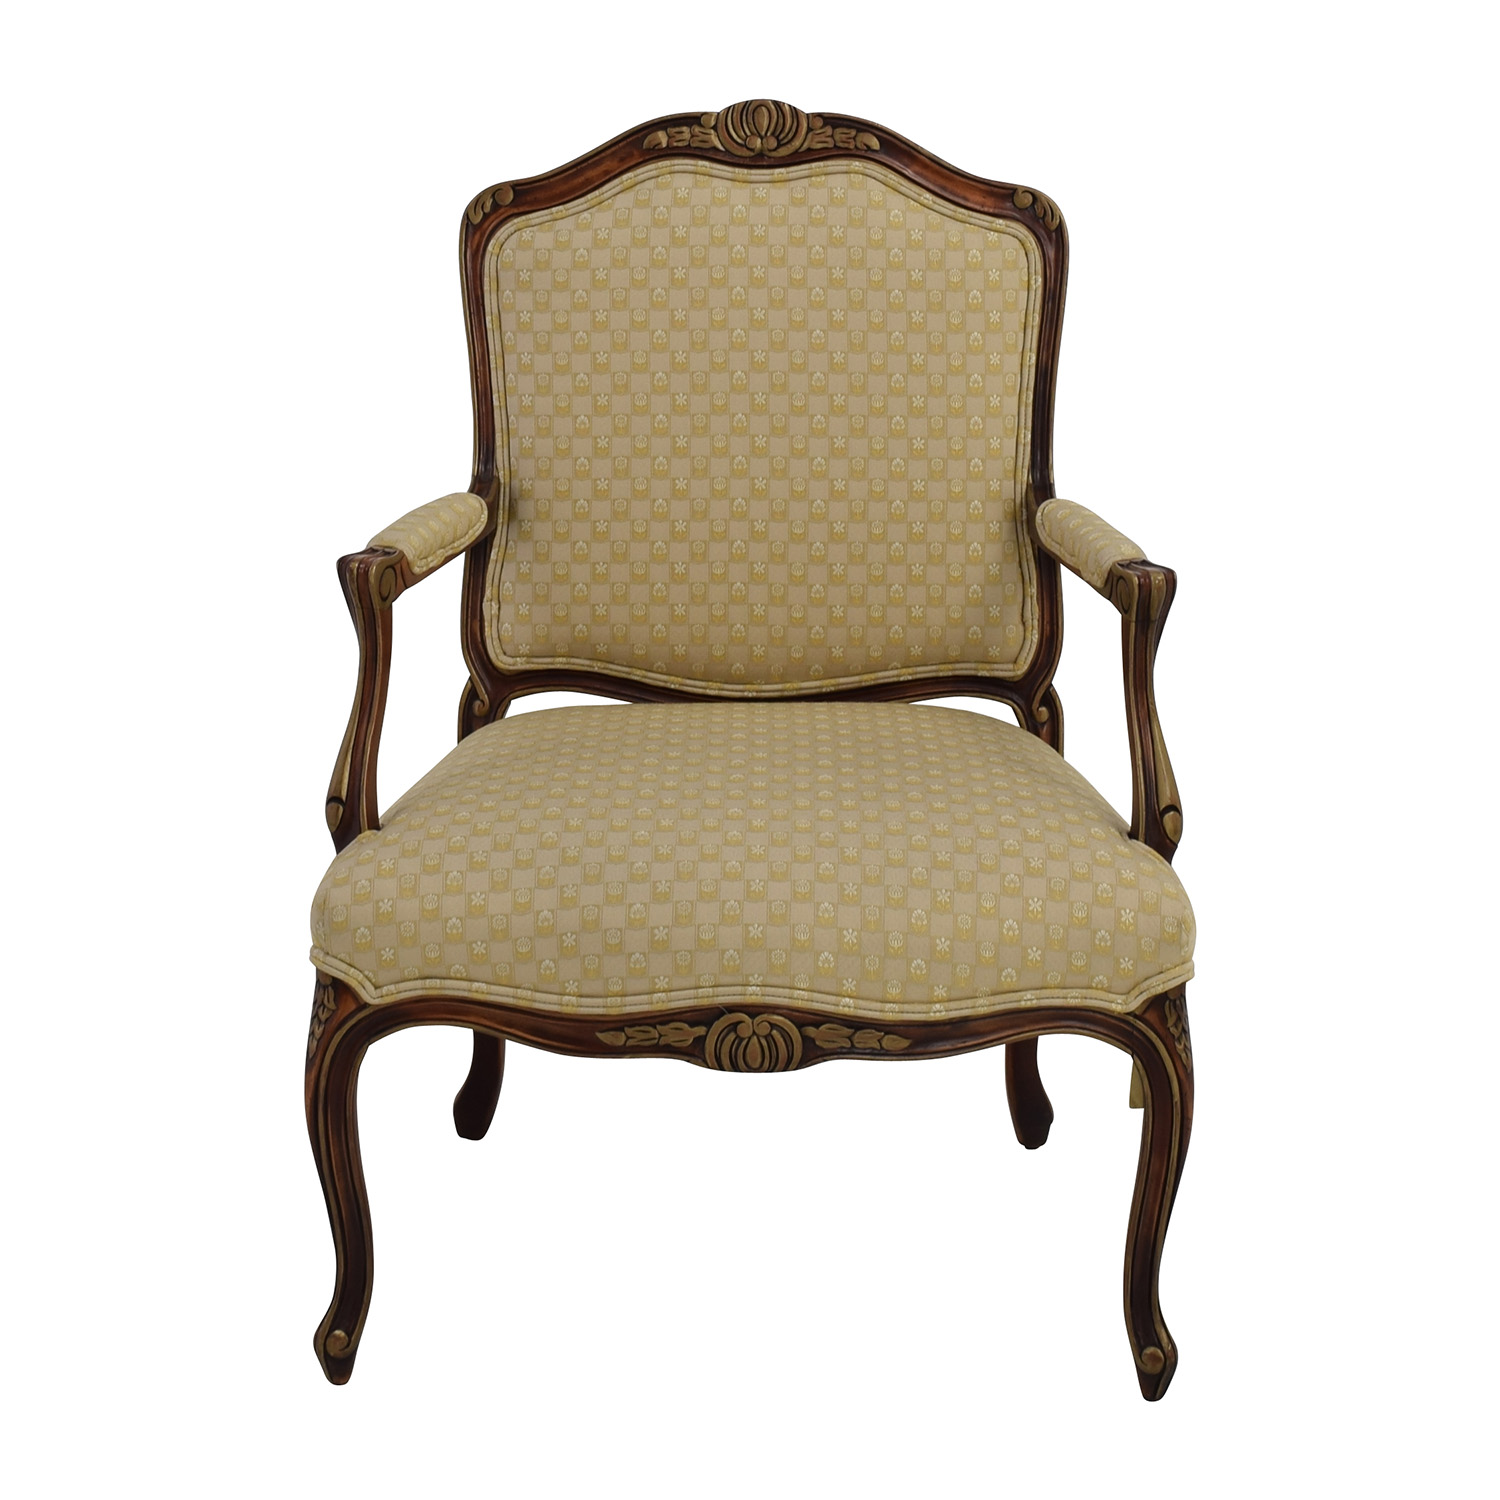 Captivating Shop Antique Upholstered Beige Classic Armchair Accent Chairs ...